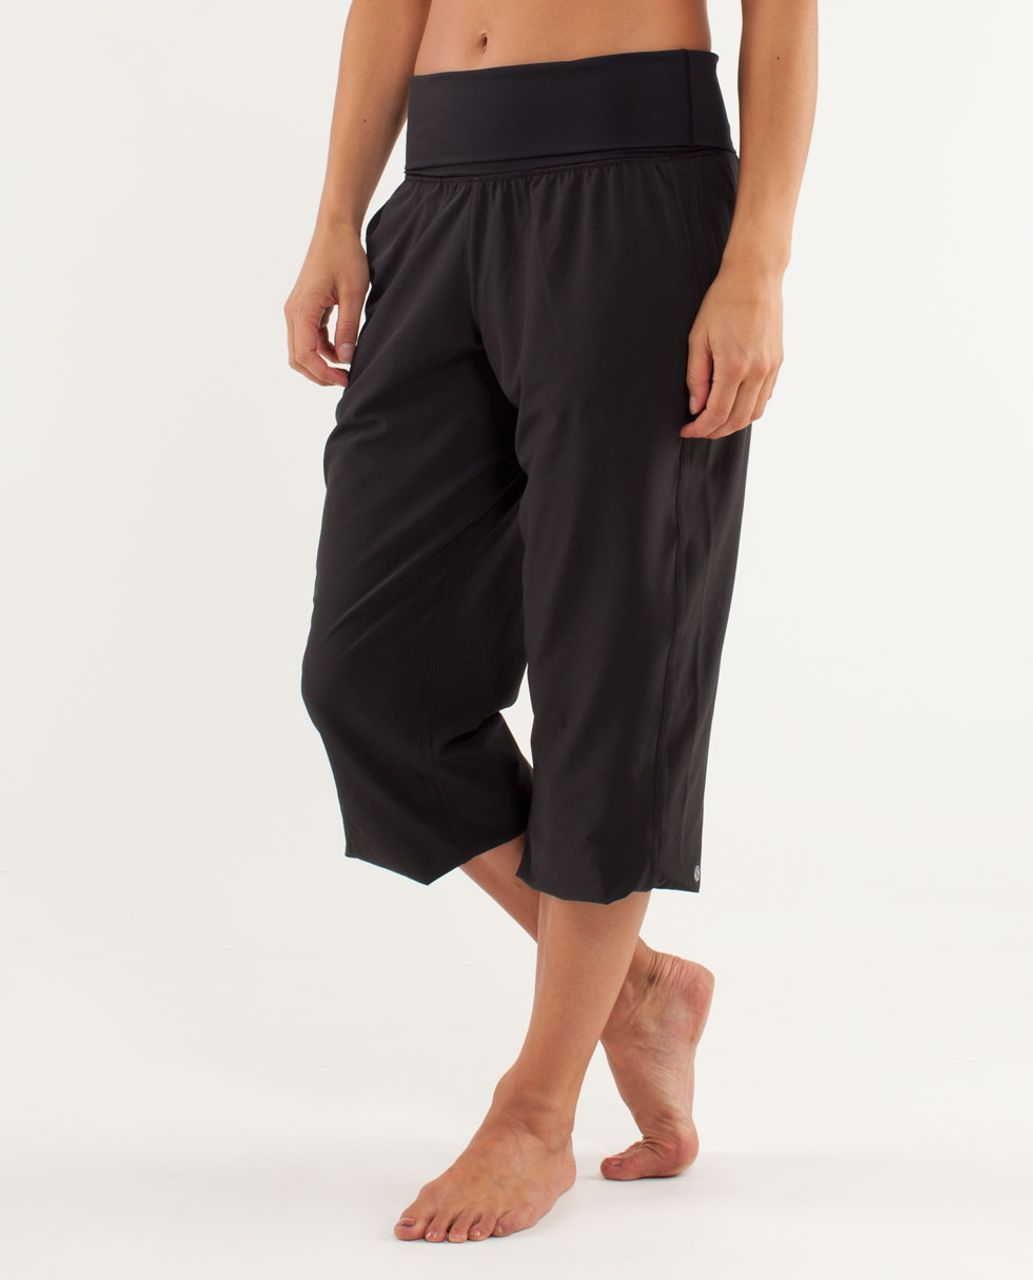 Lululemon Om Pant (First Release) - Black